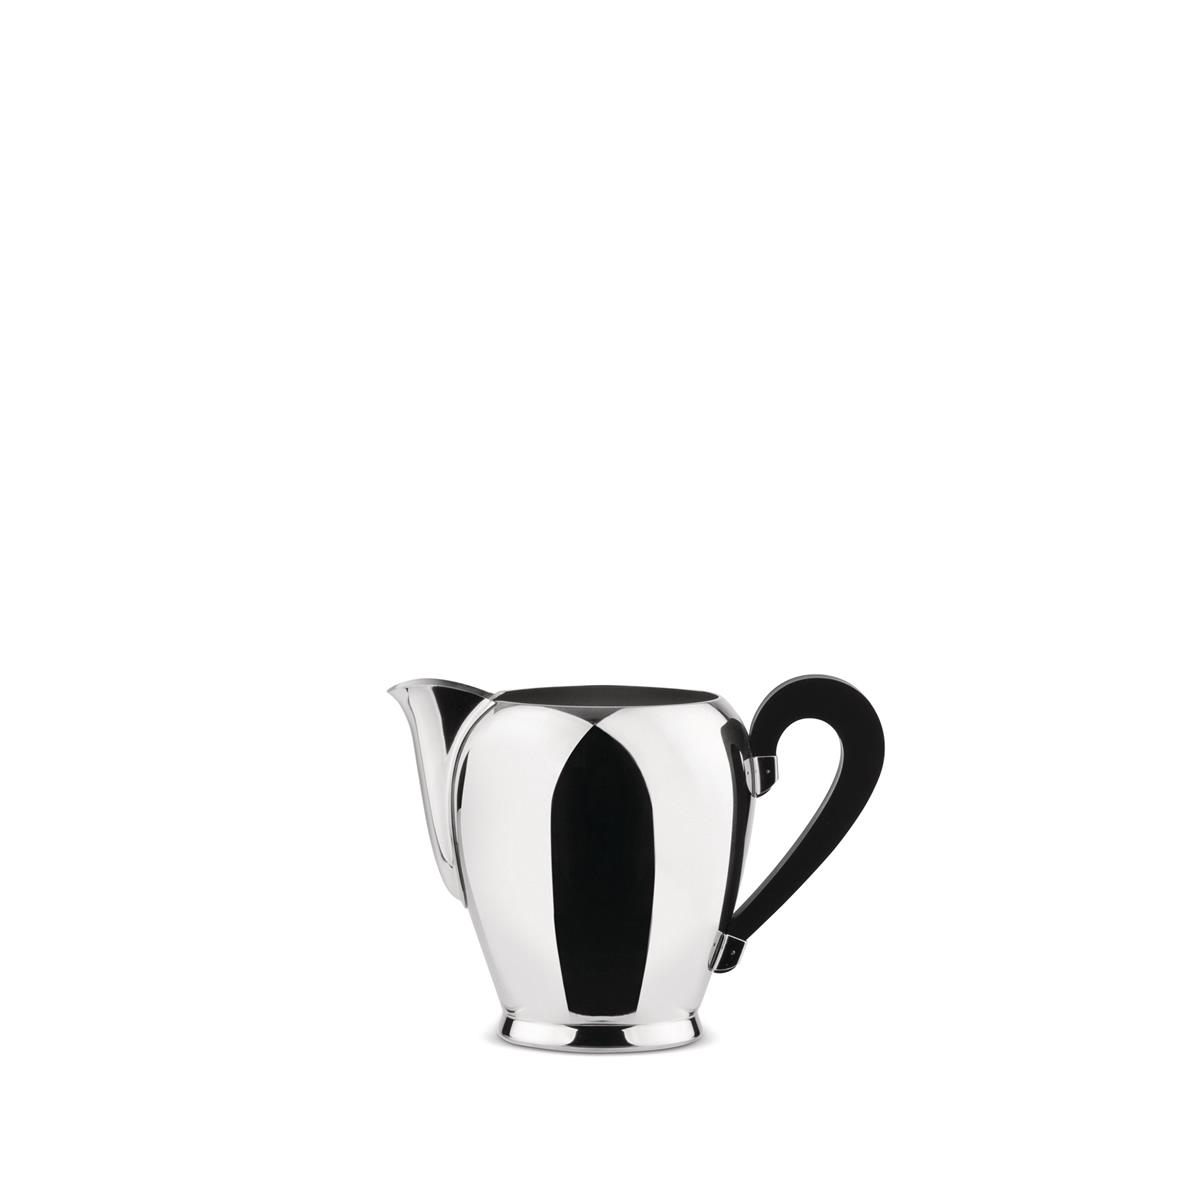 Alessi-Bombé Milk jug in 18/10 stainless steel mirror polished with bakelite handle